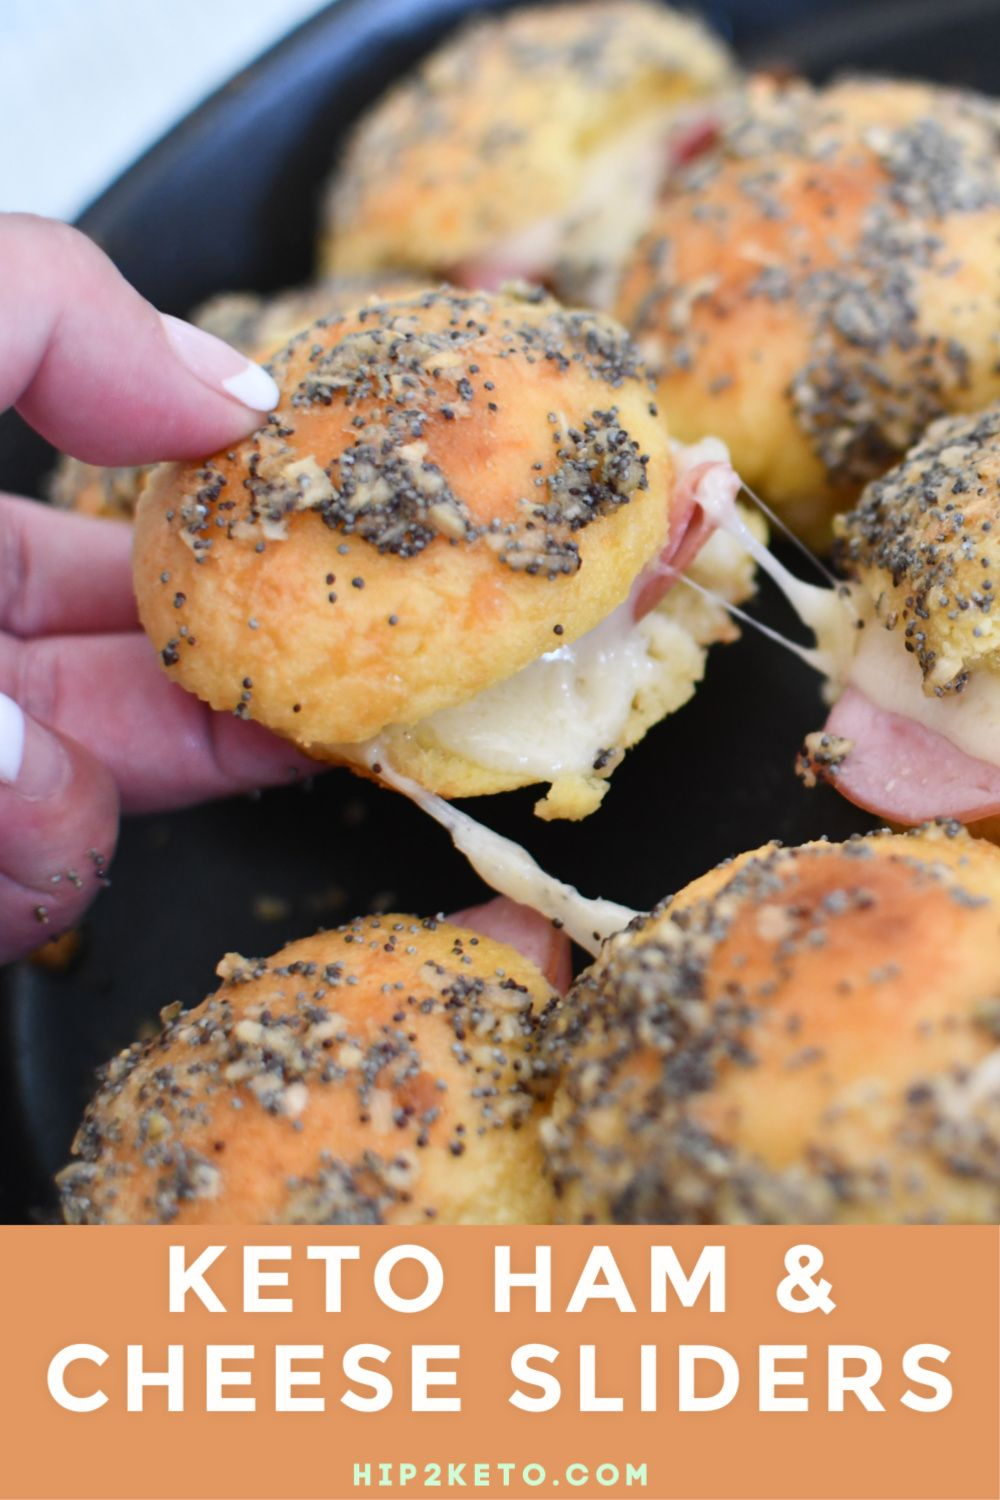 Photo of Winning Keto Ham & Cheese Sliders